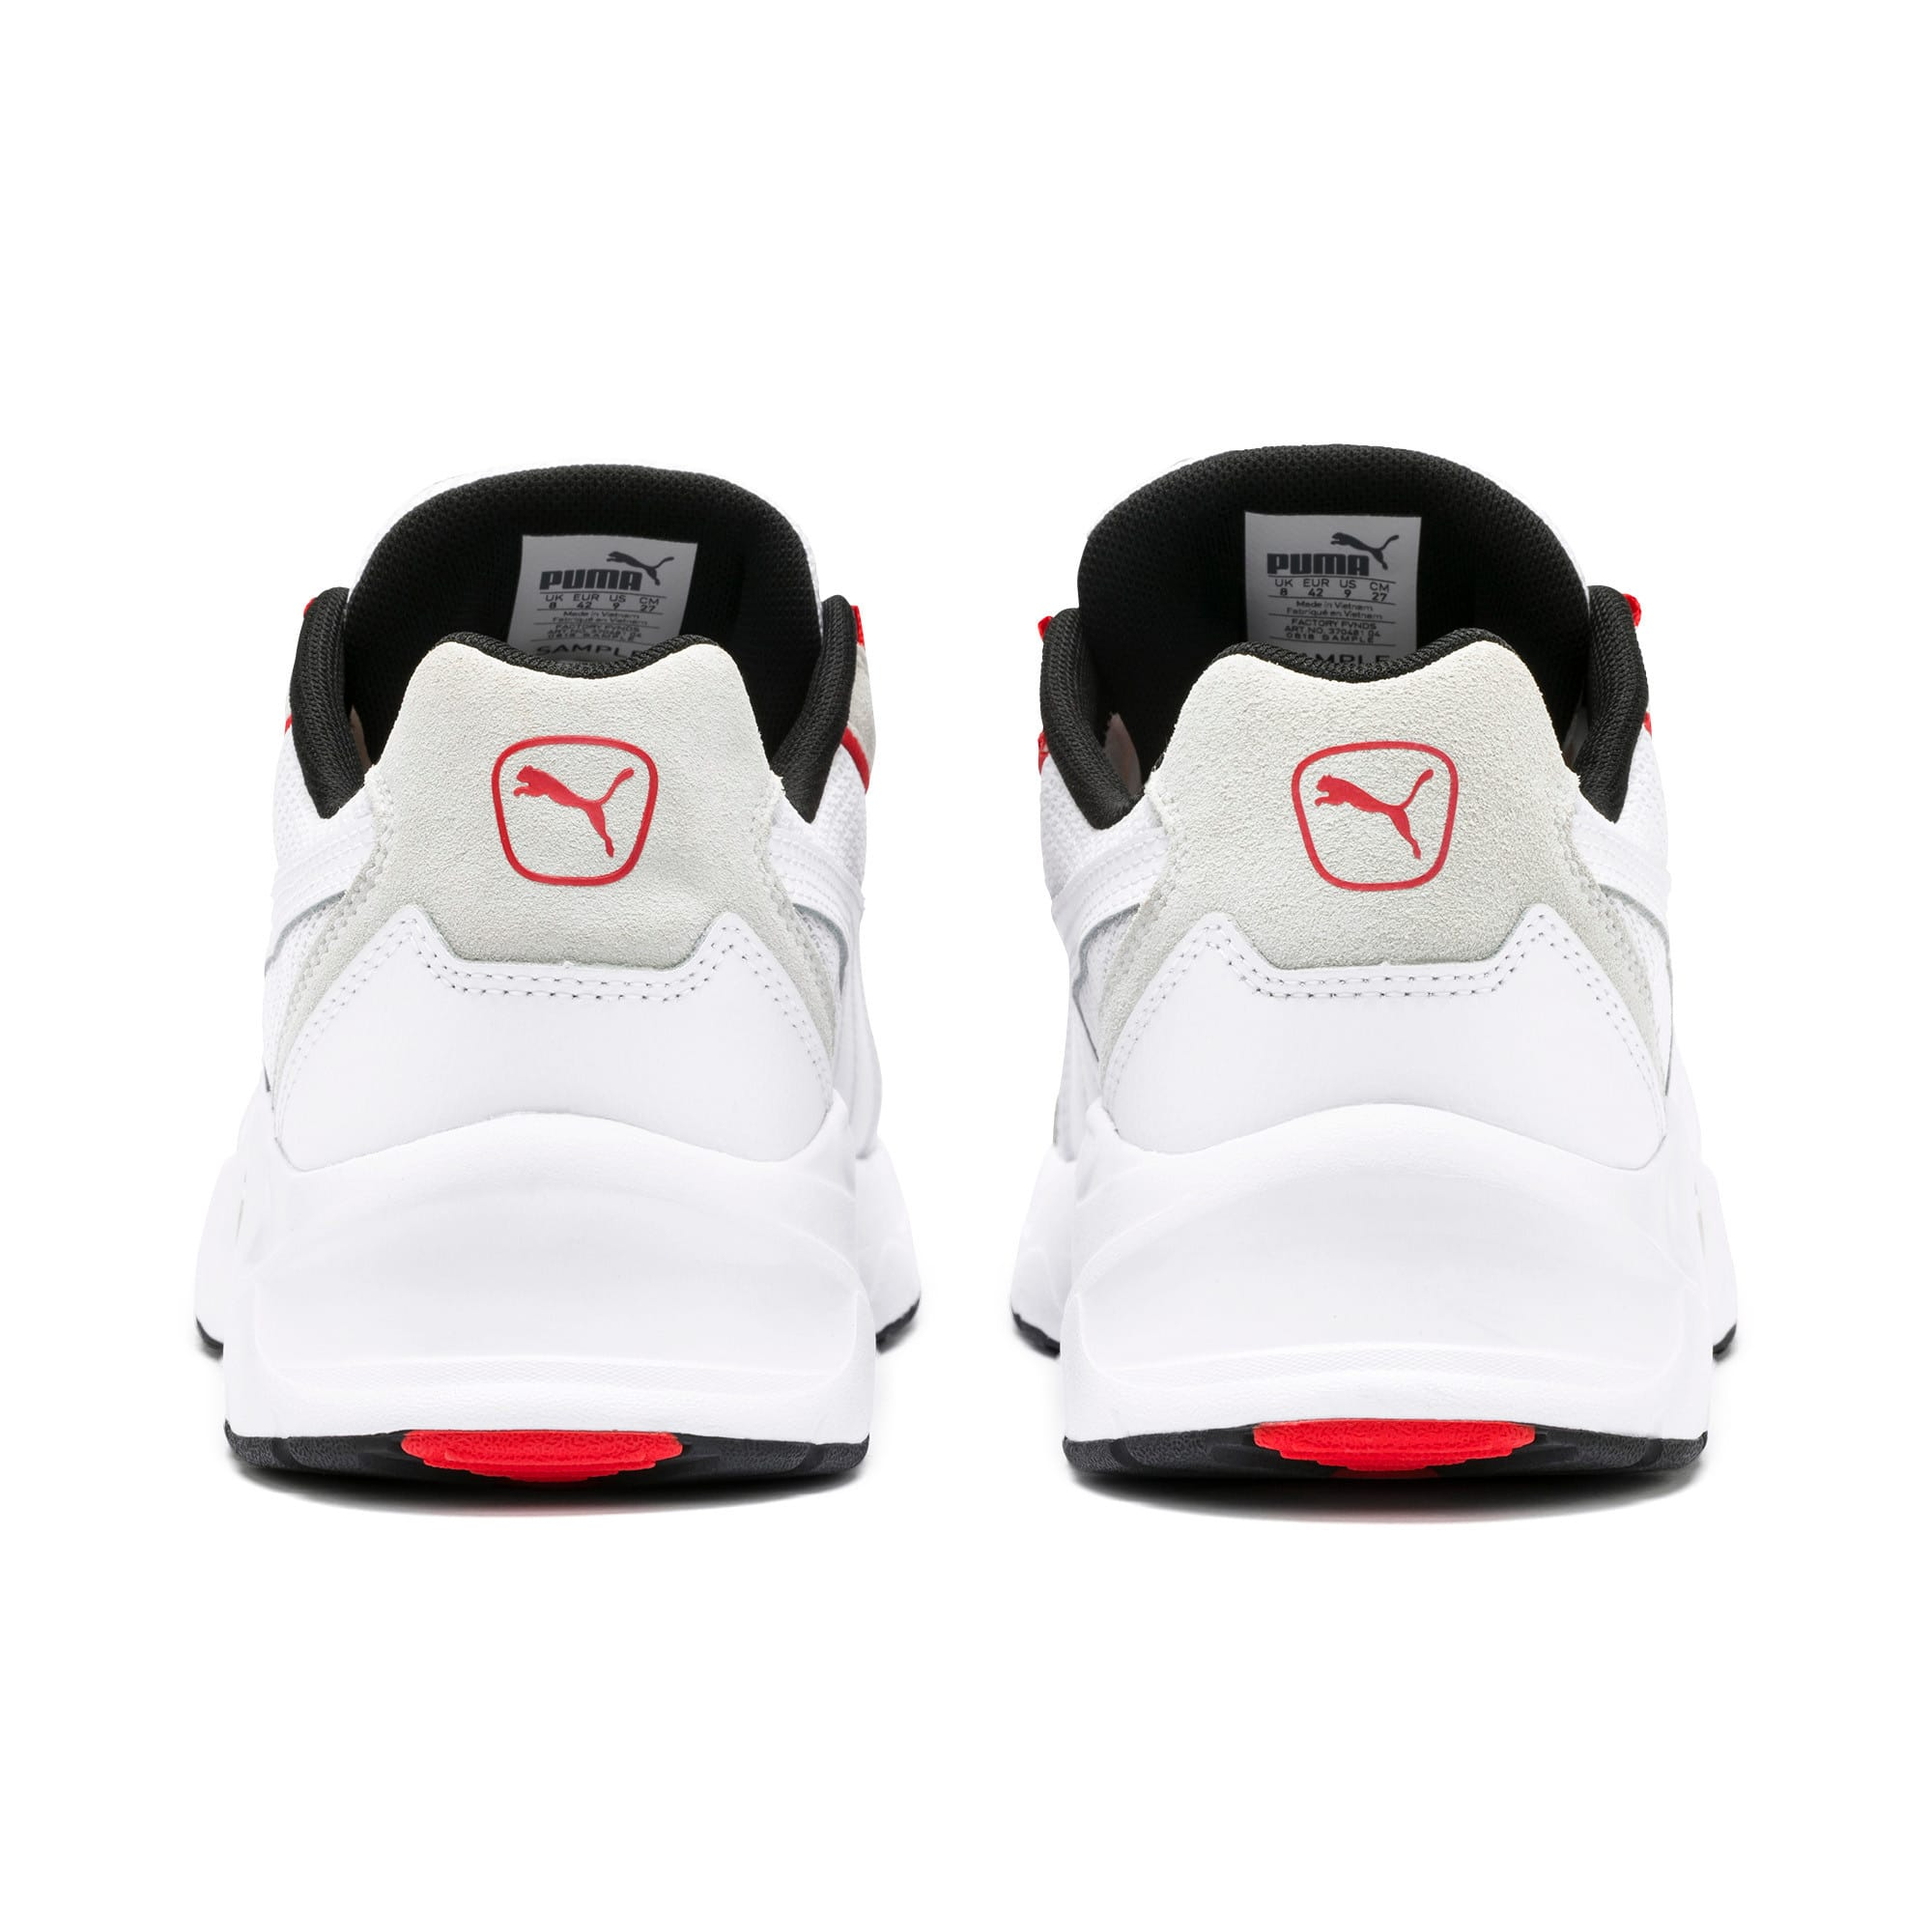 Thumbnail 4 of Nucleus Lux Trainers, Puma White-High Risk Red, medium